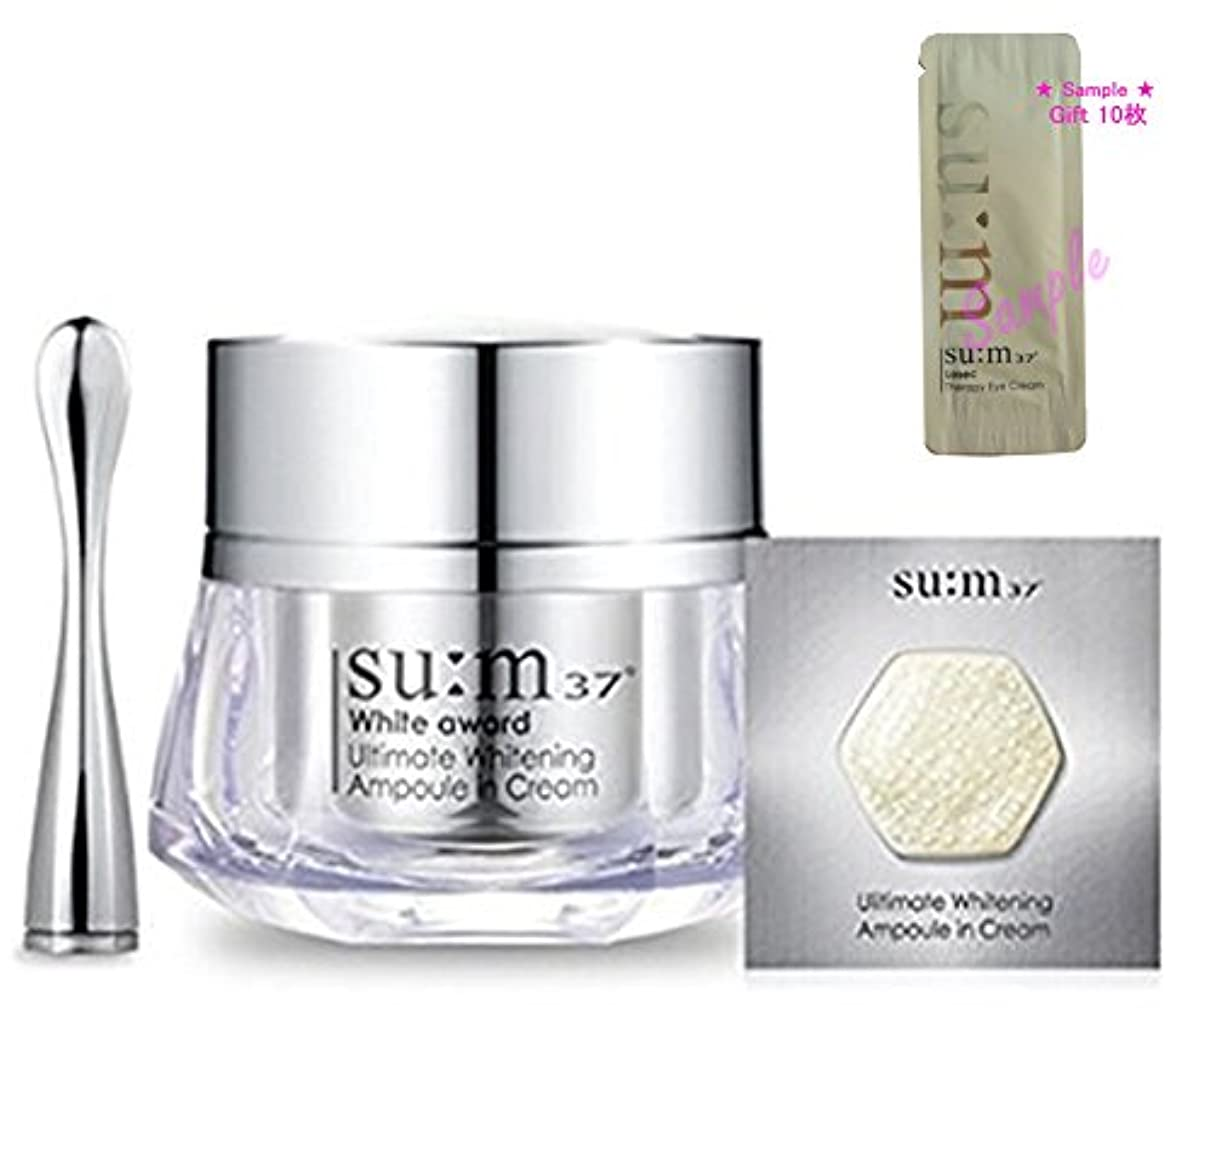 アサー芽風変わりな[su:m37/スム37°] SUM37 WHITE AWARD ULTIMATE WHITENING AMPOULE IN CREAM(並行輸入品)